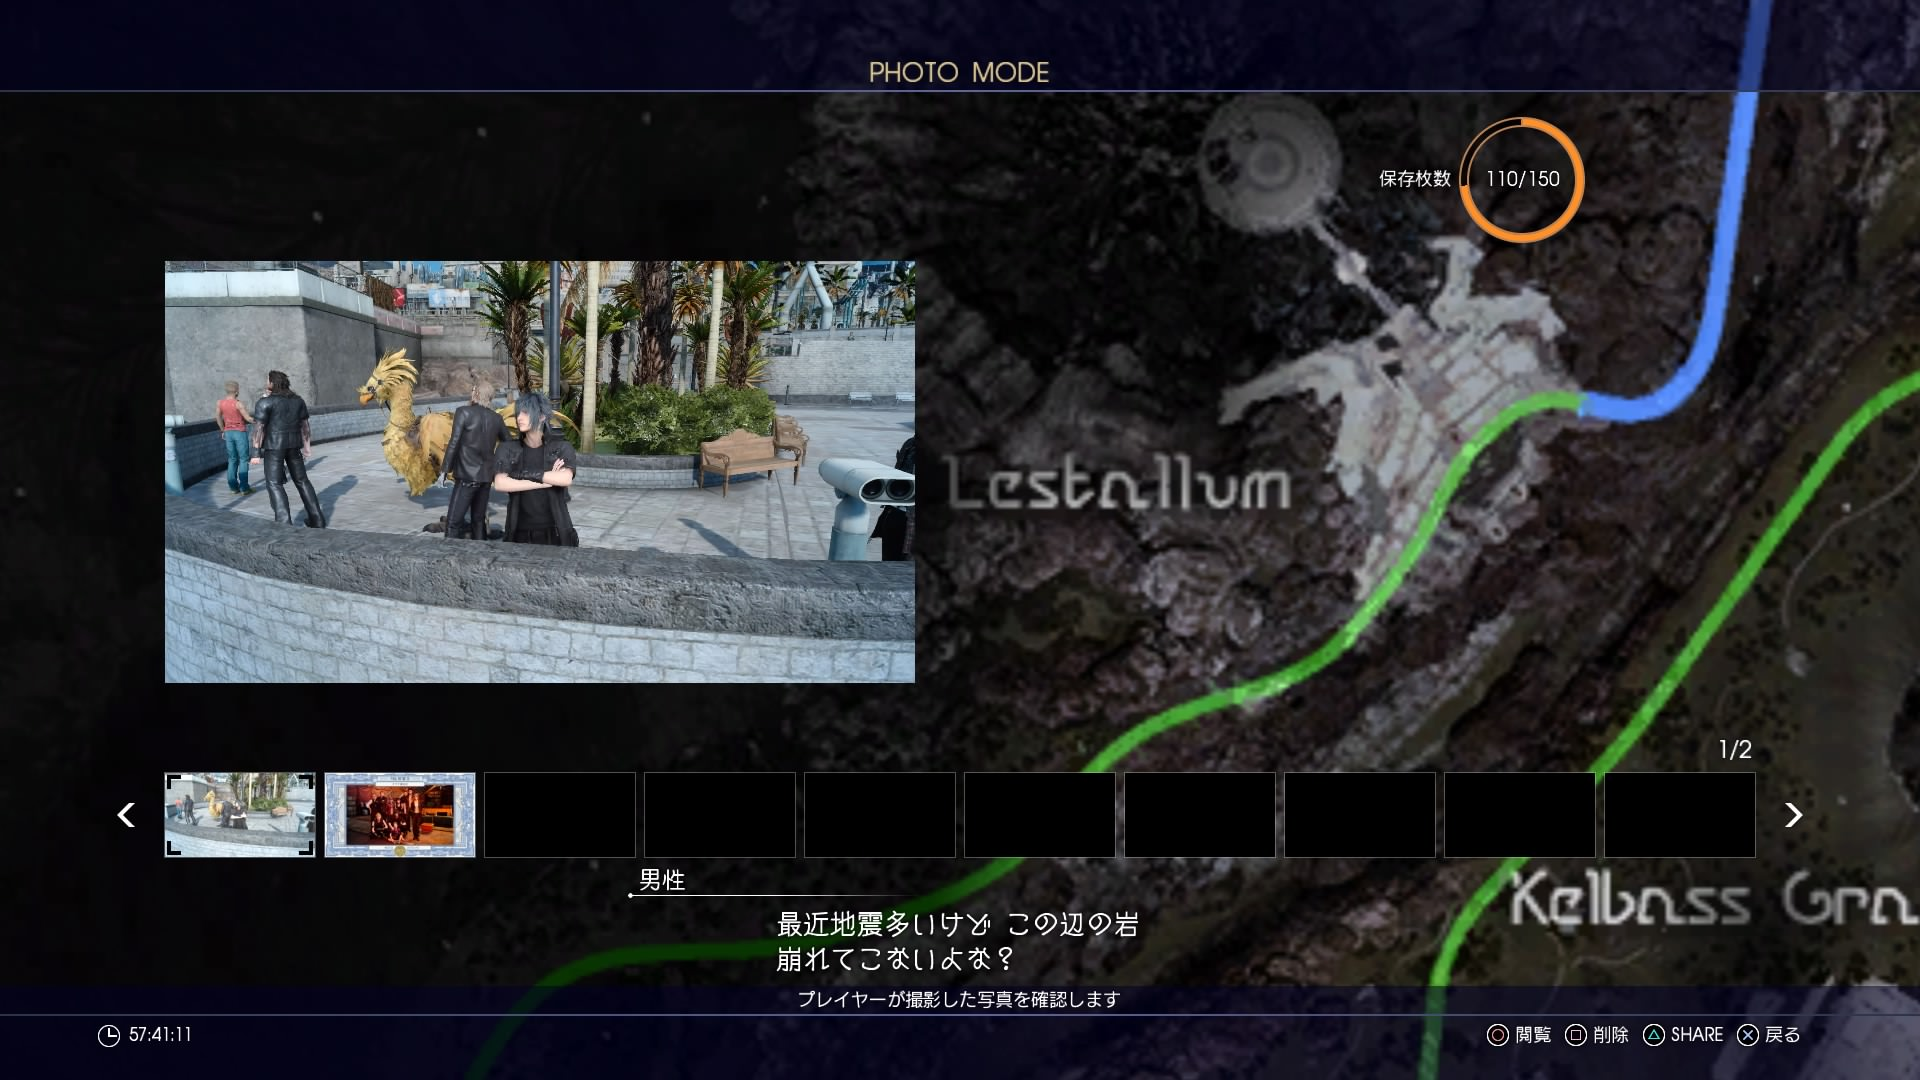 Ff15 self taking picture 6